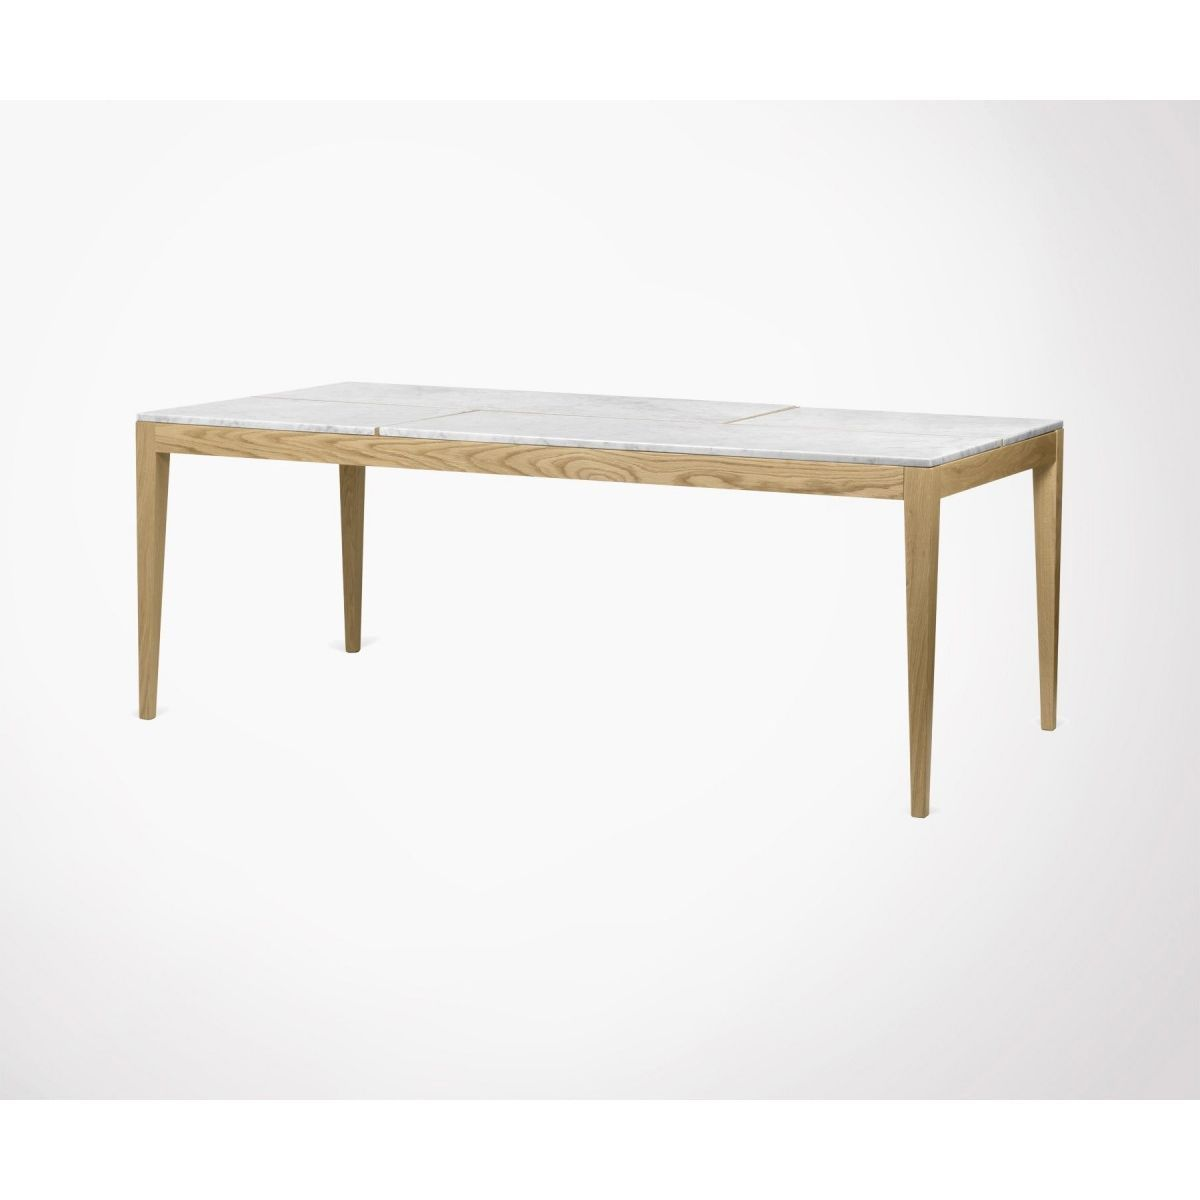 Grande Table A Manger 201cm Marbre Blanc Utile Taille 8 Pers